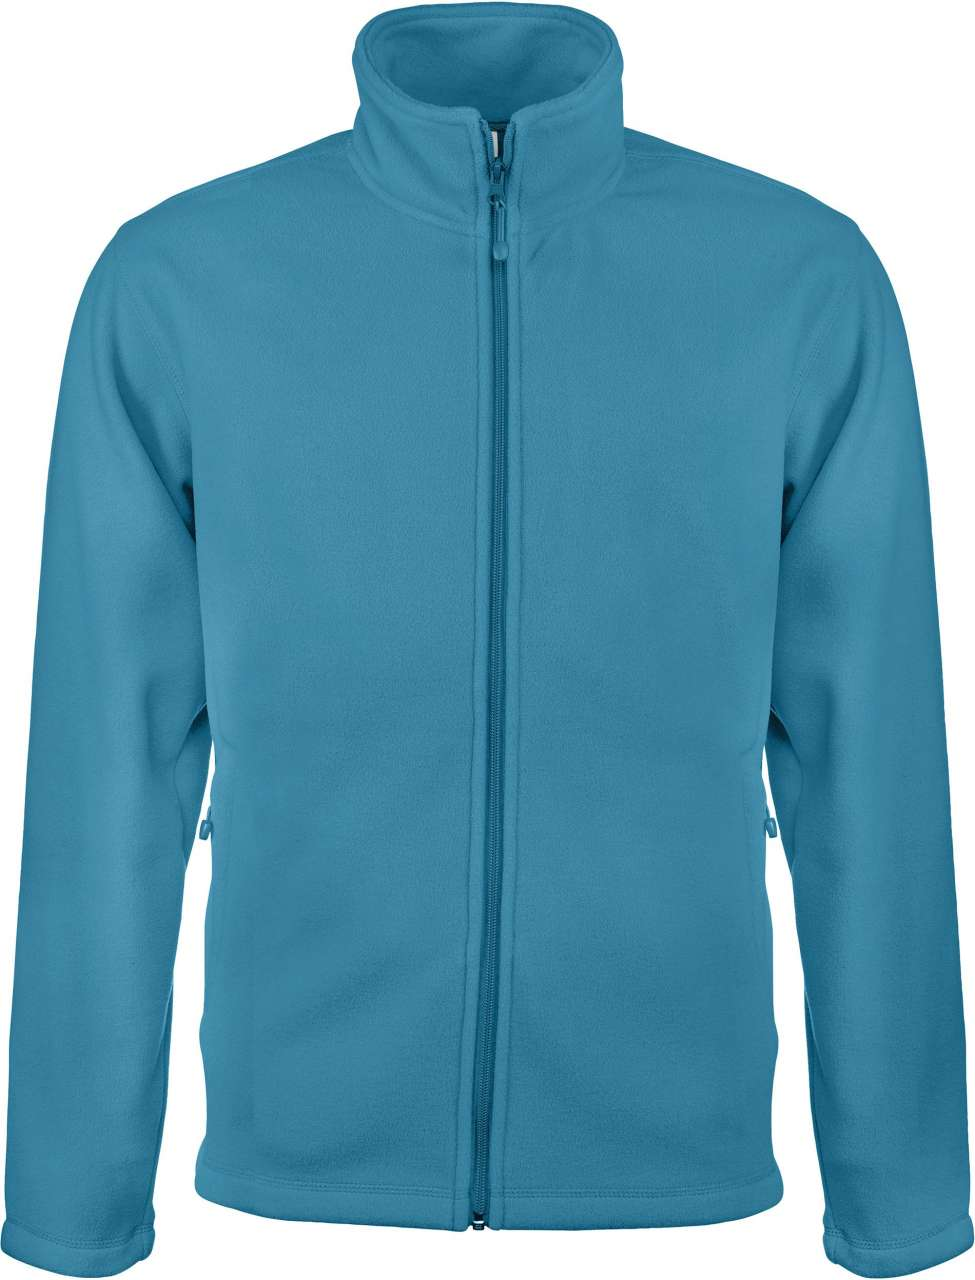 Fleece KA911 tropical blue este jachete dama barbatesti polar fleece softshell fas gluga ploaie vant broderie serigrafie termotransfer | Toroadv.ro